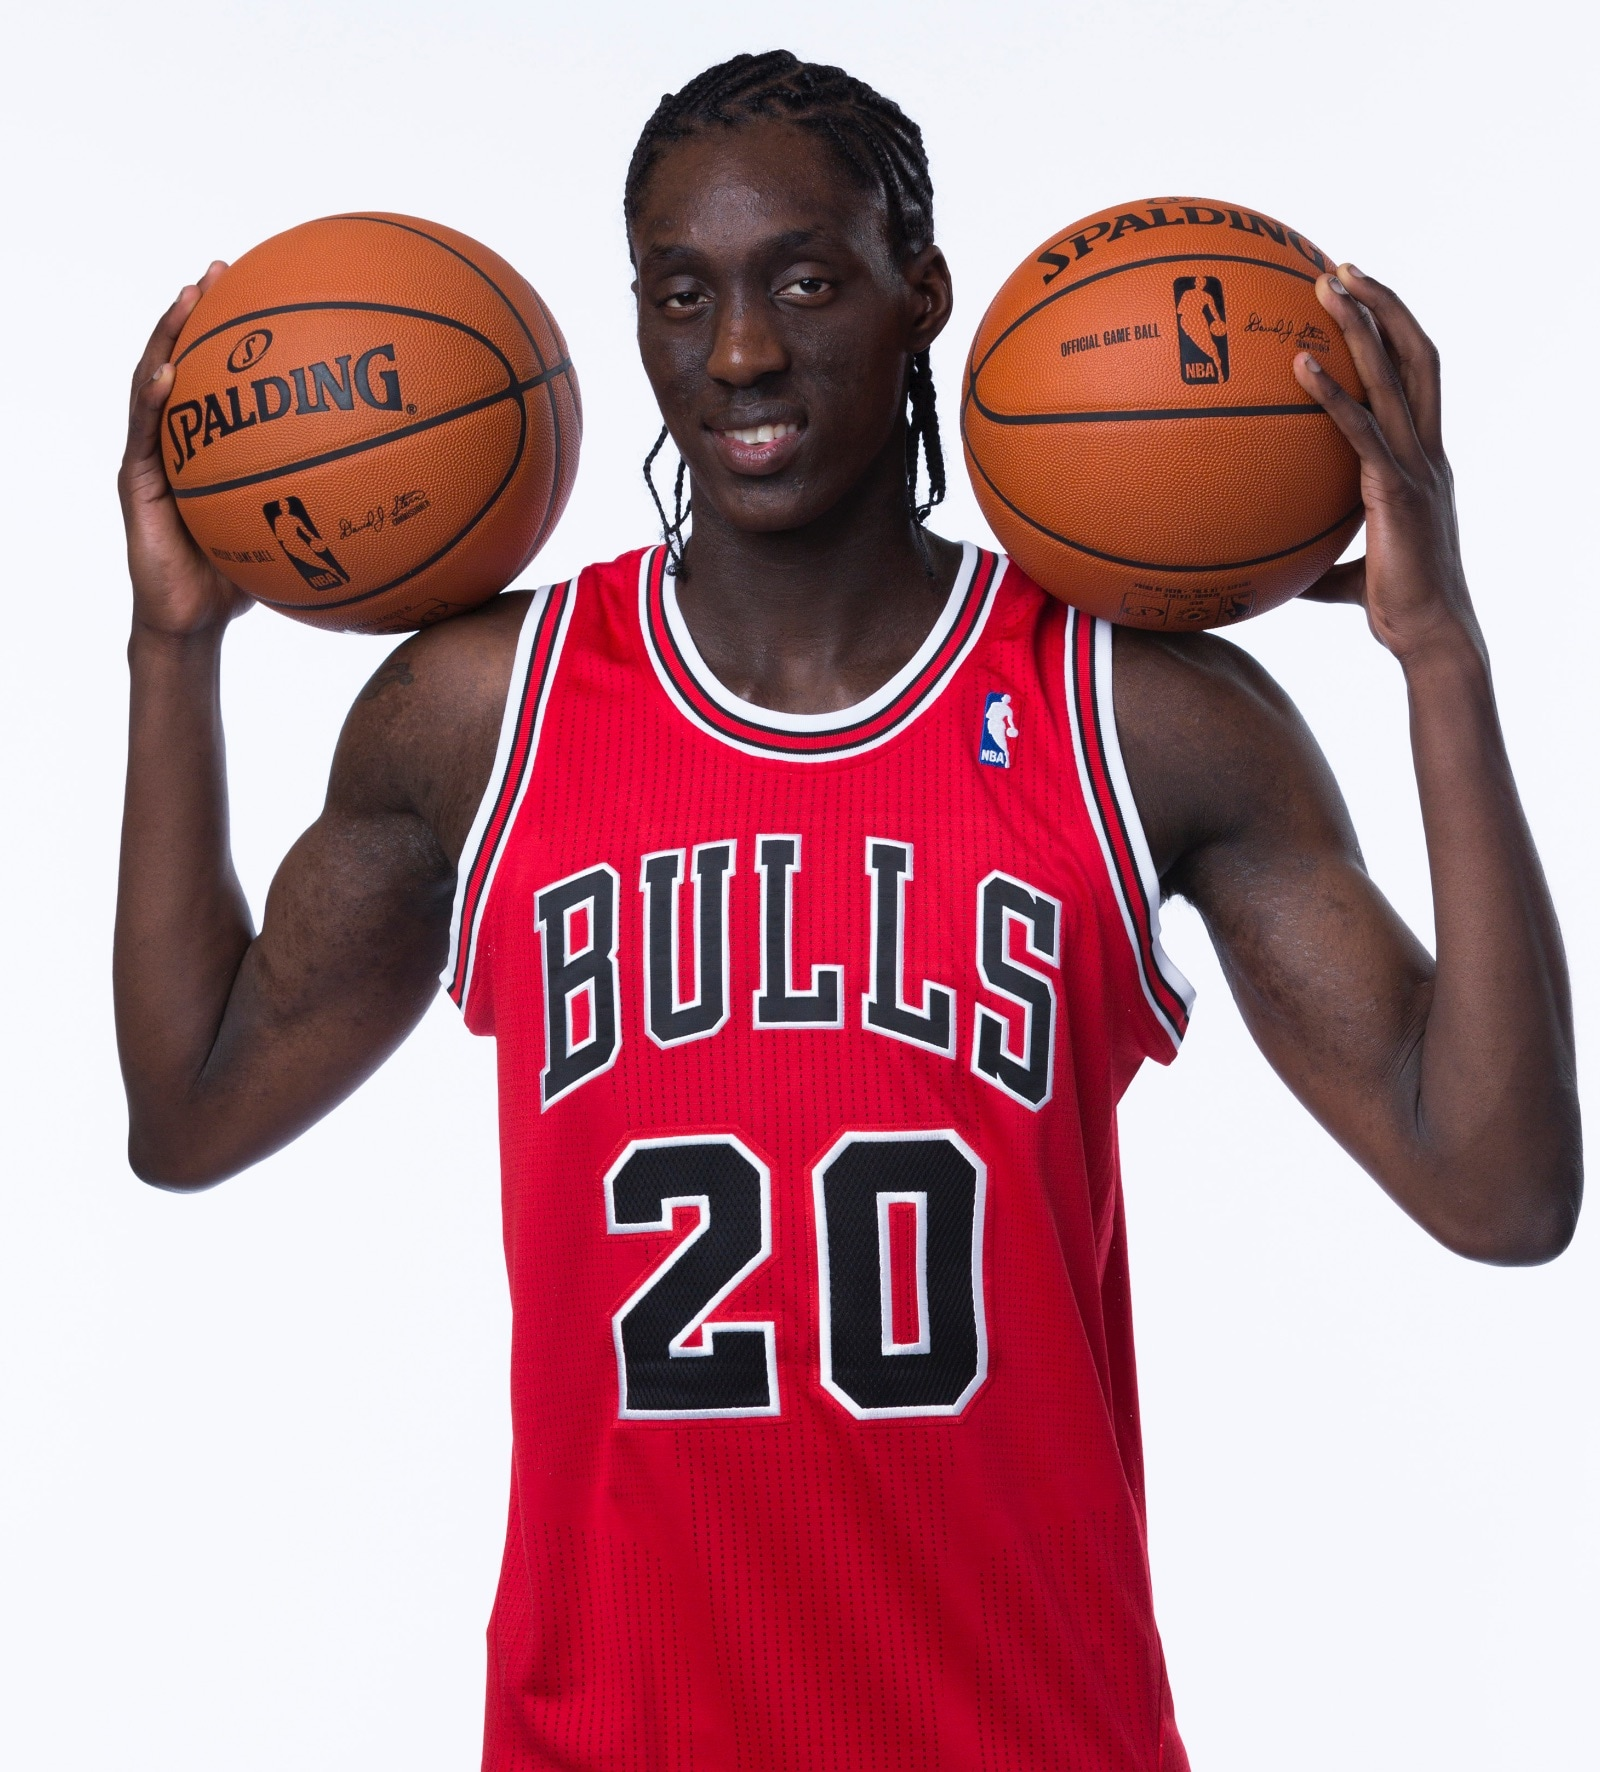 2013 NBA Draft: Tony Snell